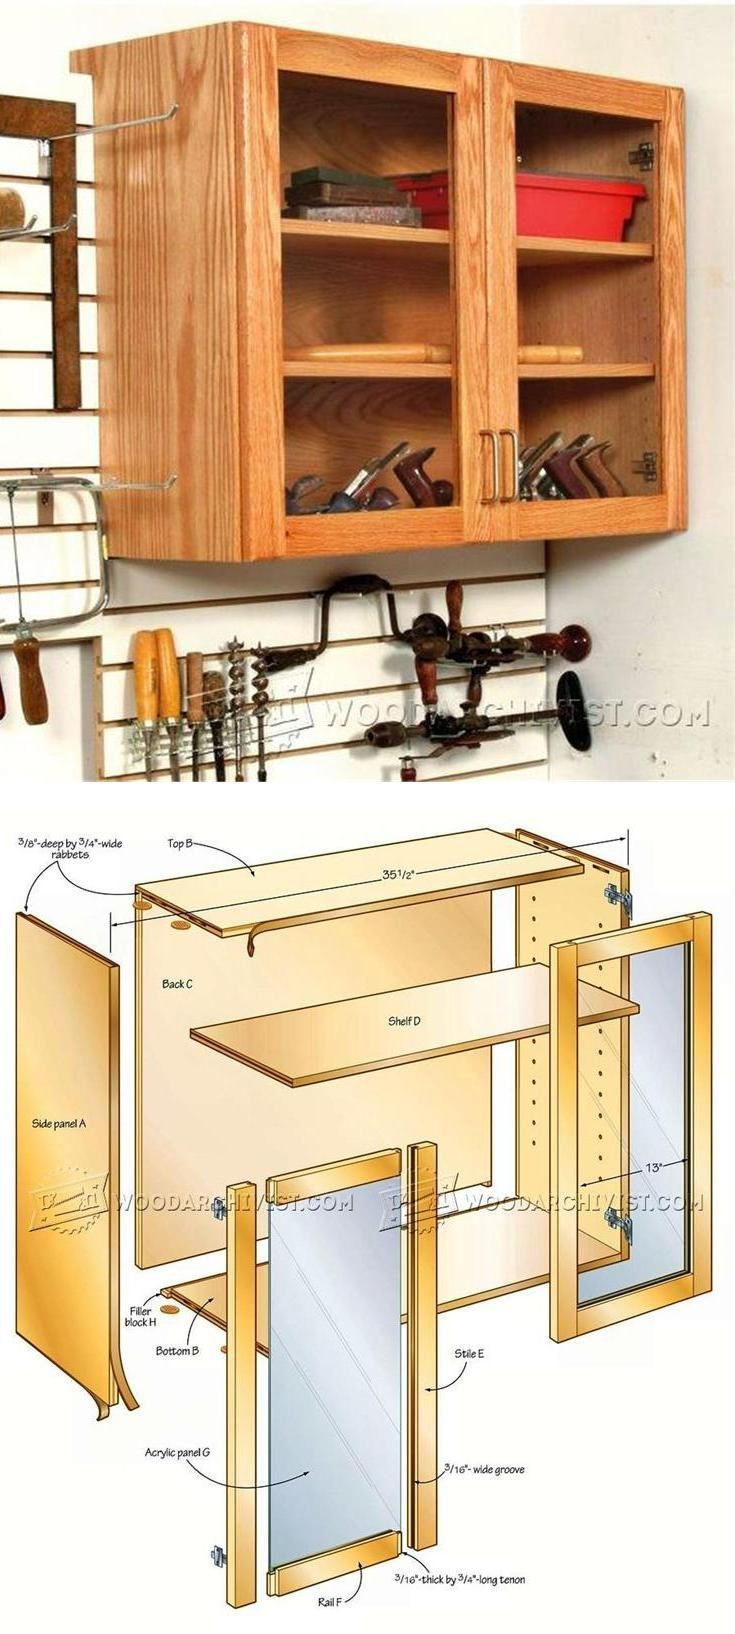 Hand Tool Wall Cabinet Plans - Workshop Solutions Plans, Tips and ...